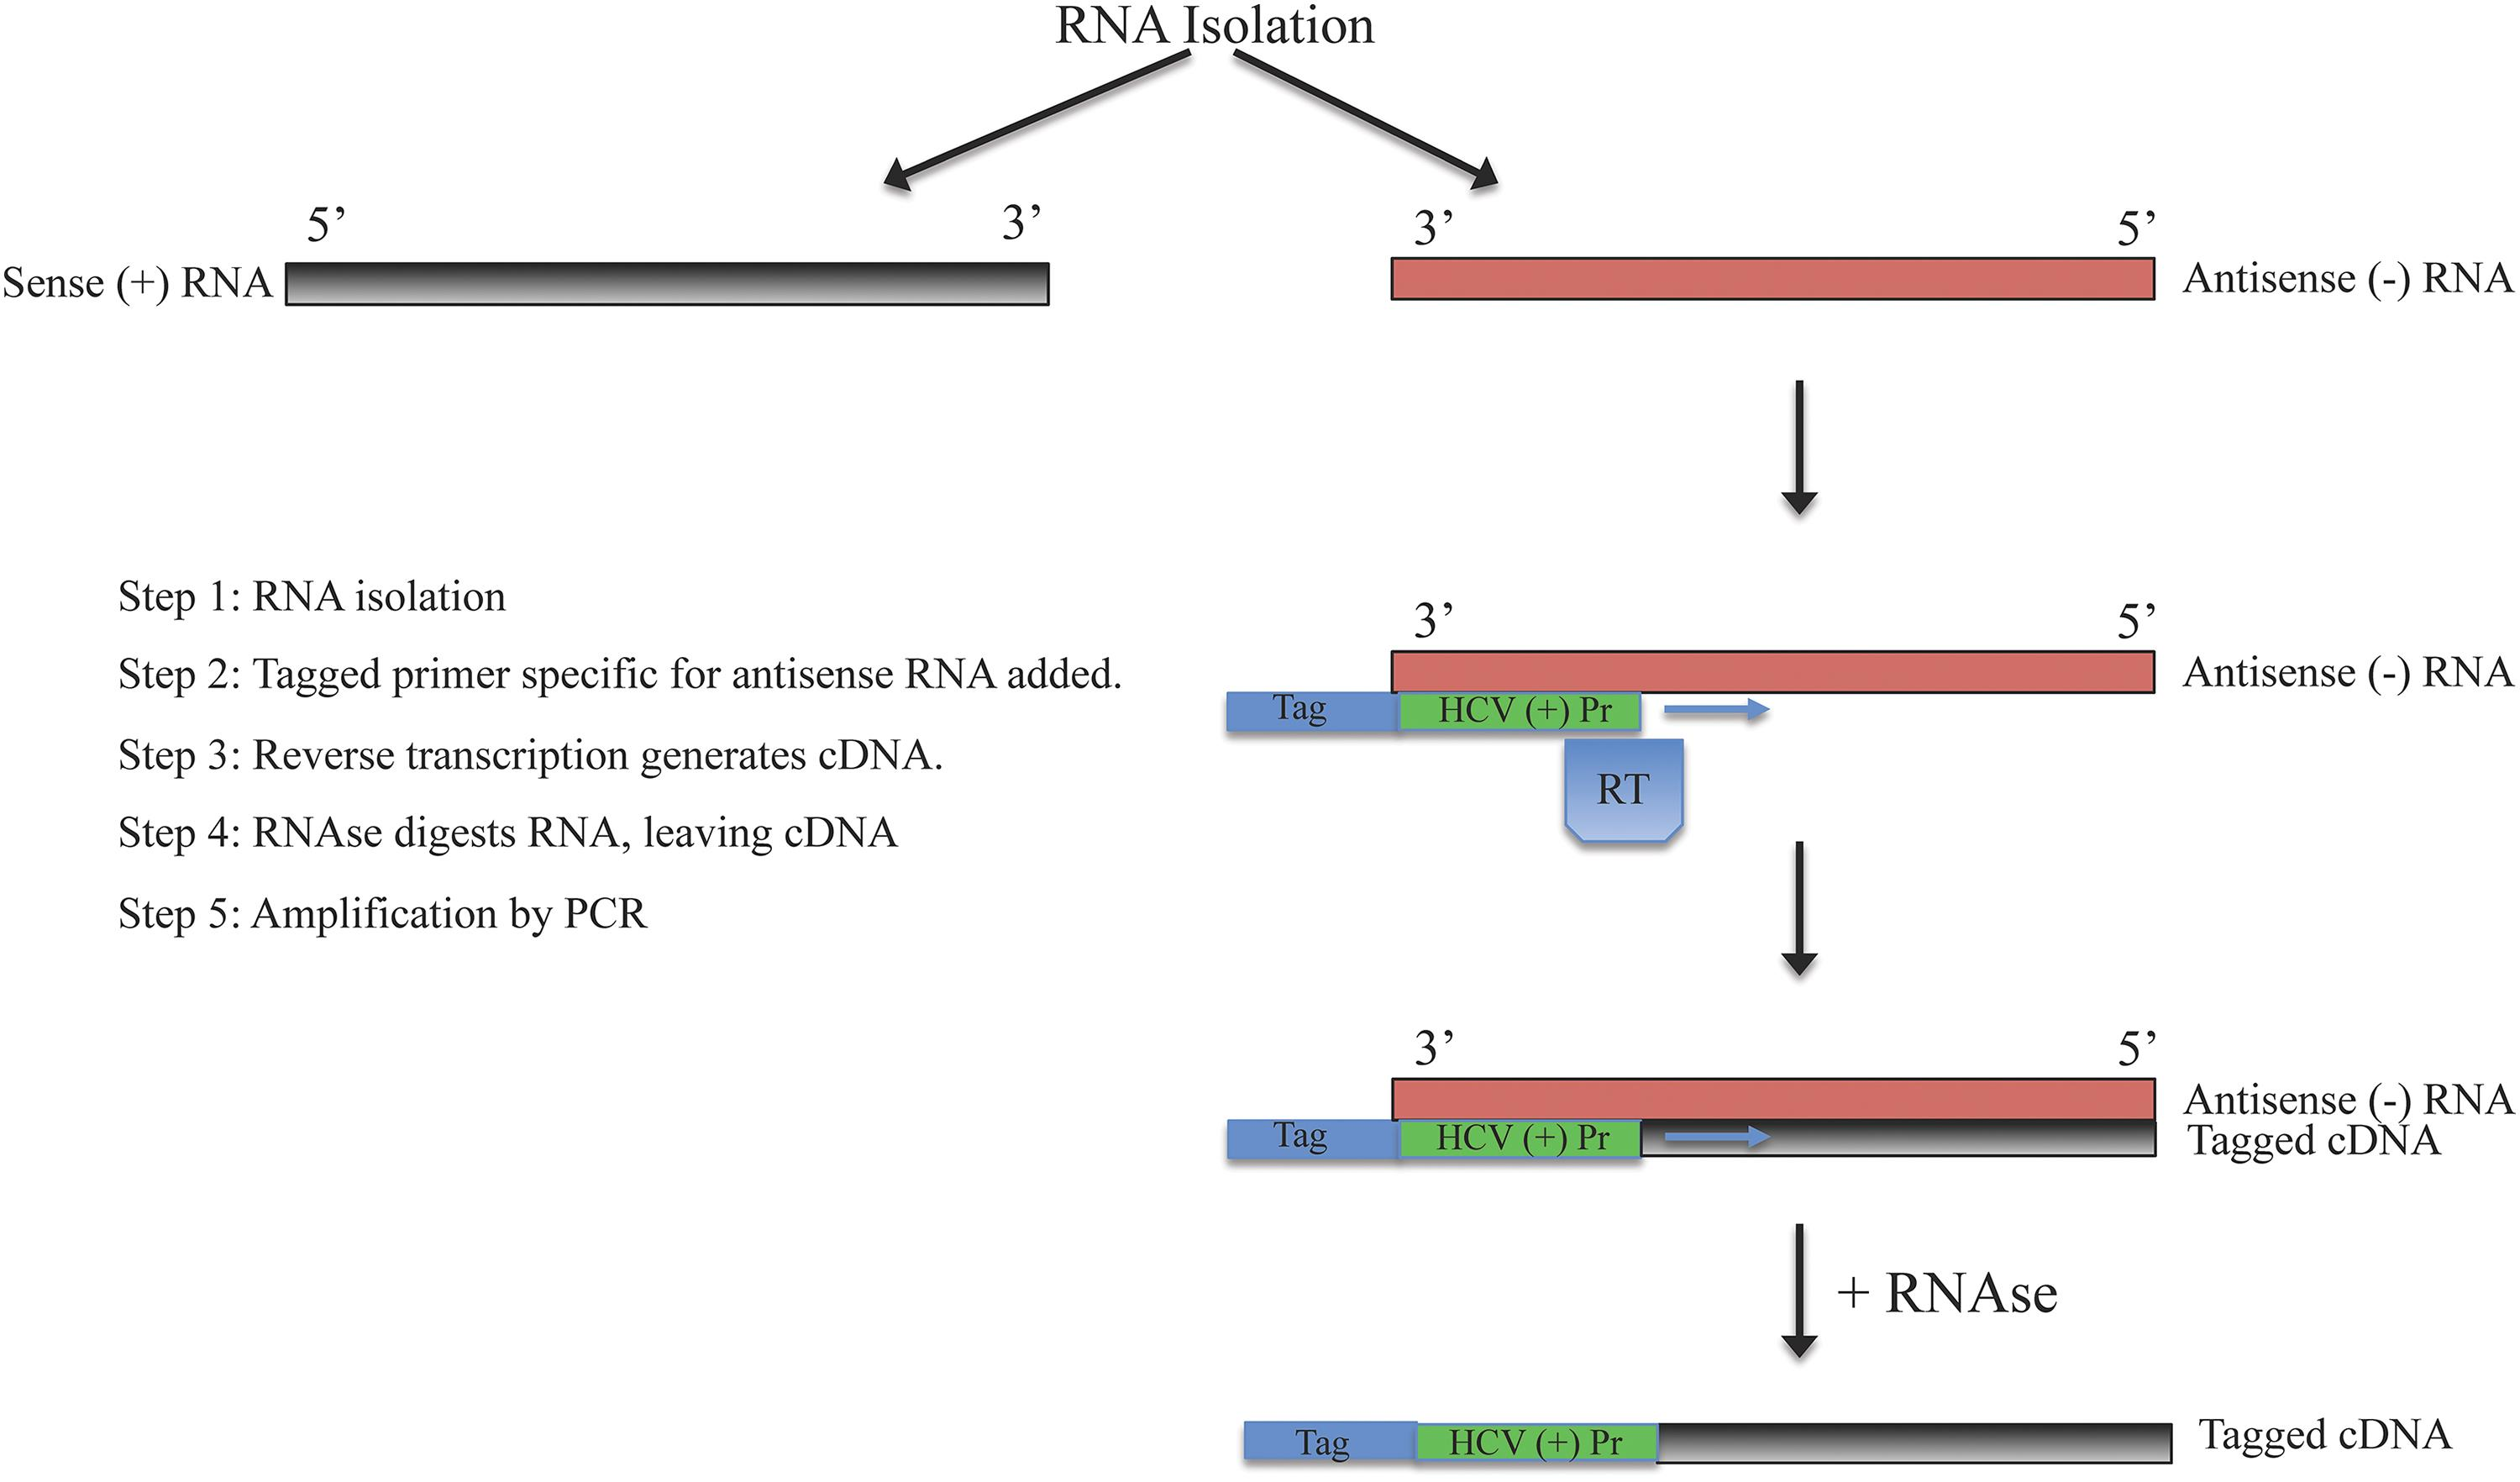 Strand specific RT-PCR for amplification of antisense RNA strand.